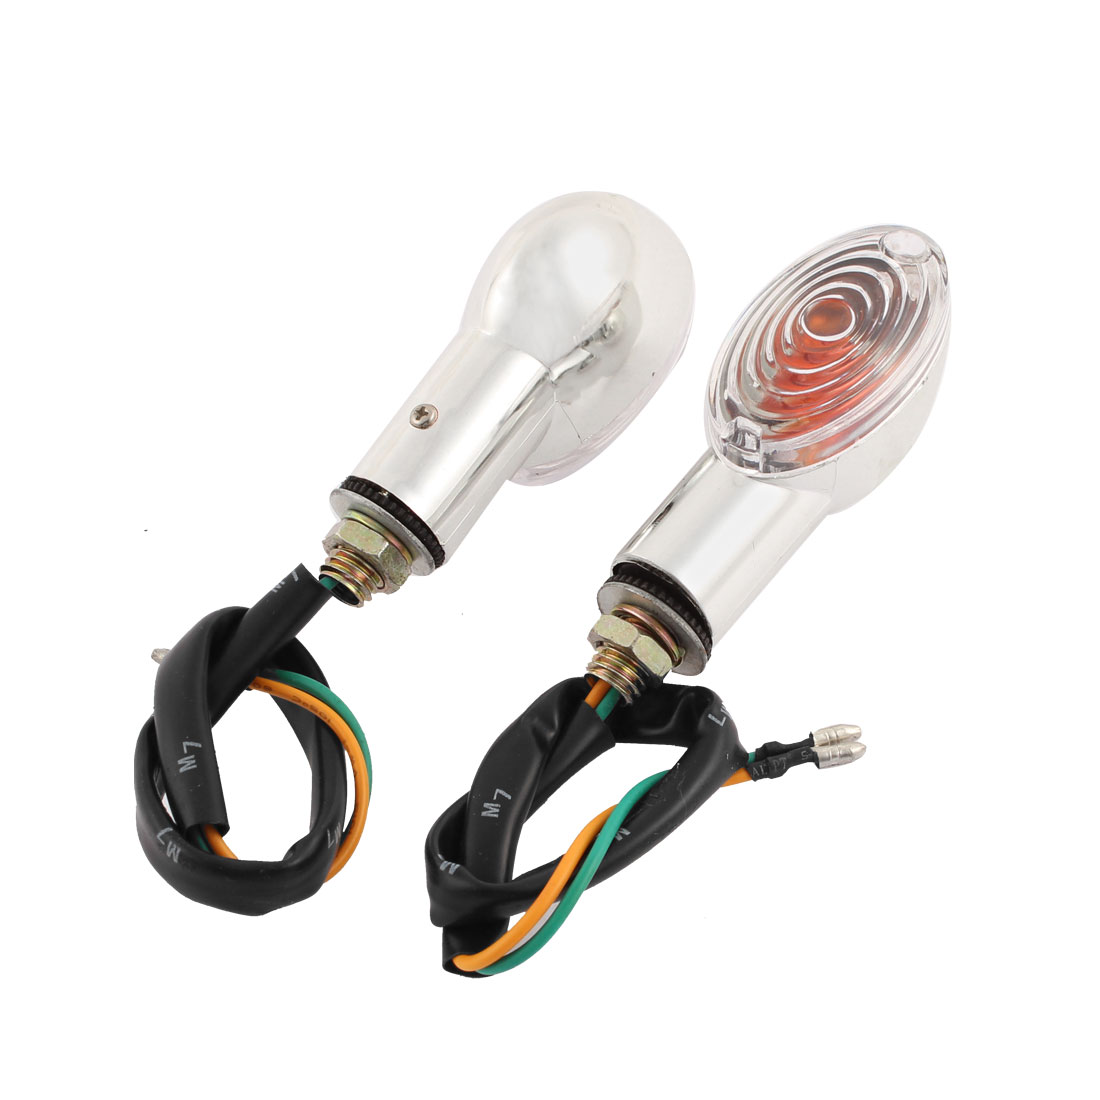 2 PCS Yellow LED Motorbike Turn Signal Indicator Lights Silver Tone